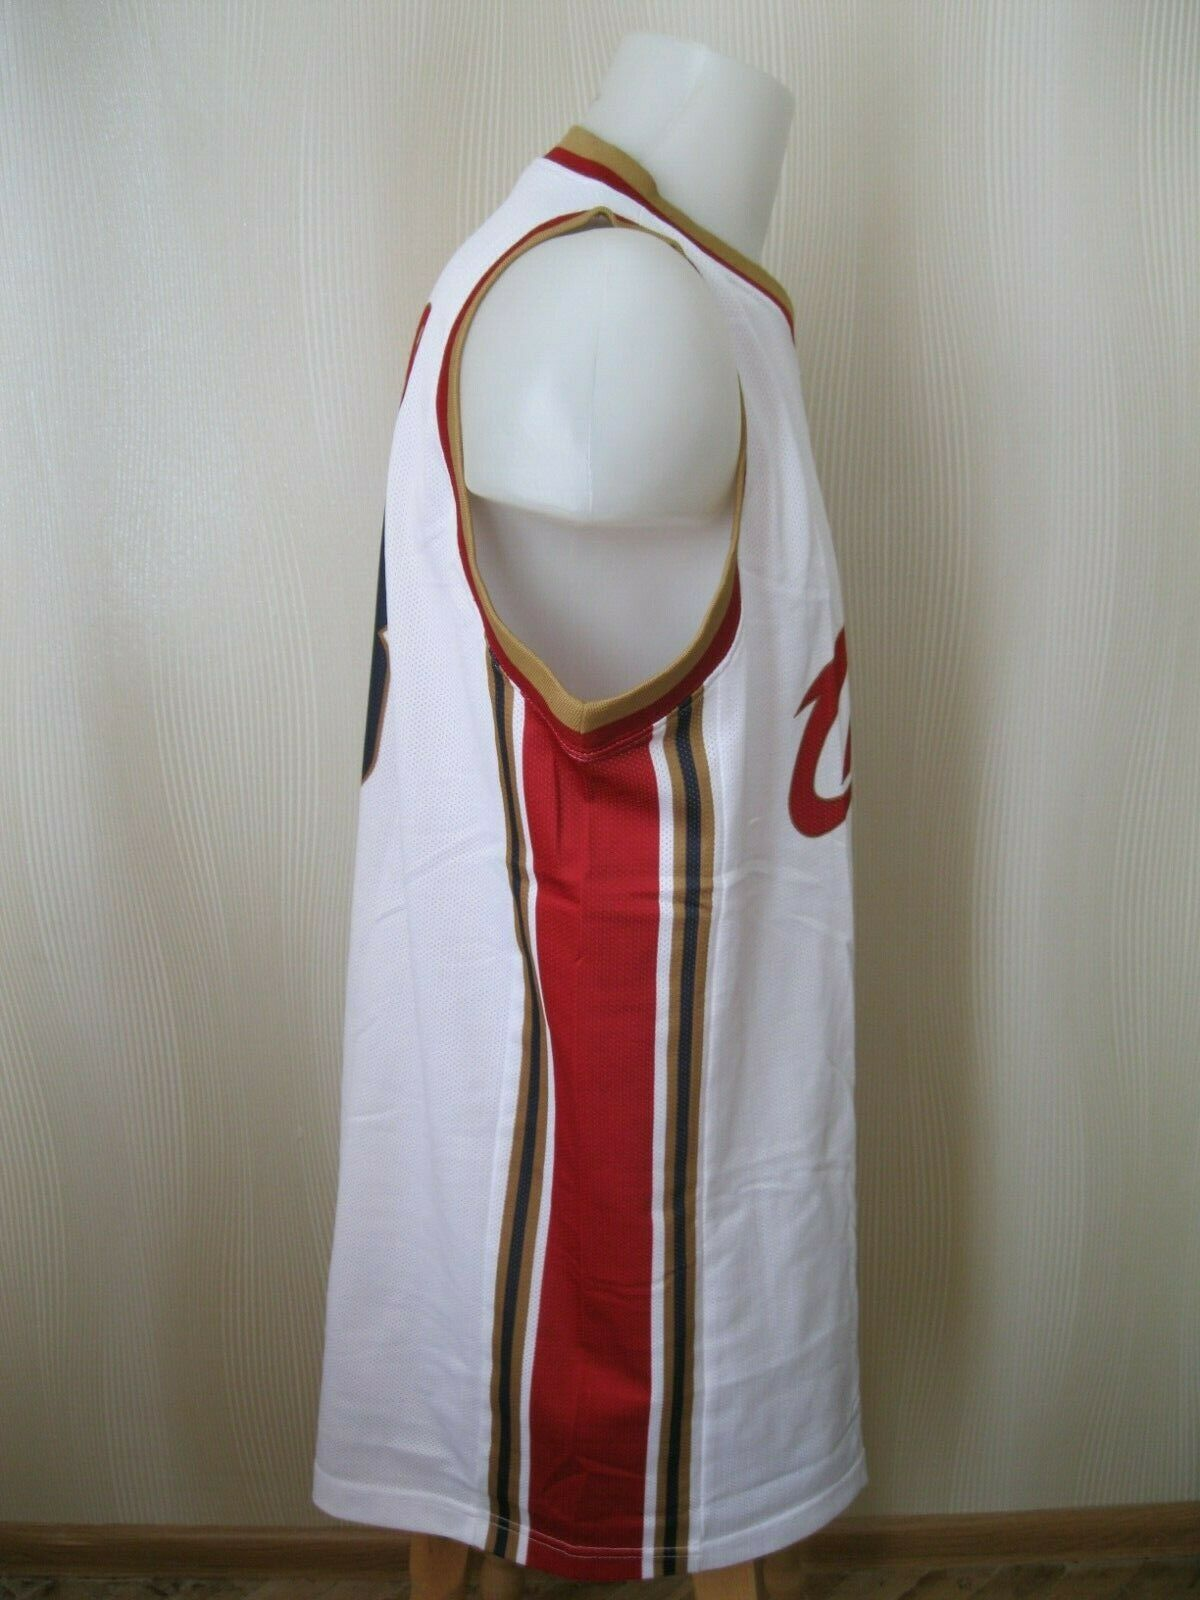 Cleveland Cavaliers #23 LeBron James Size 2XL Champion jersey